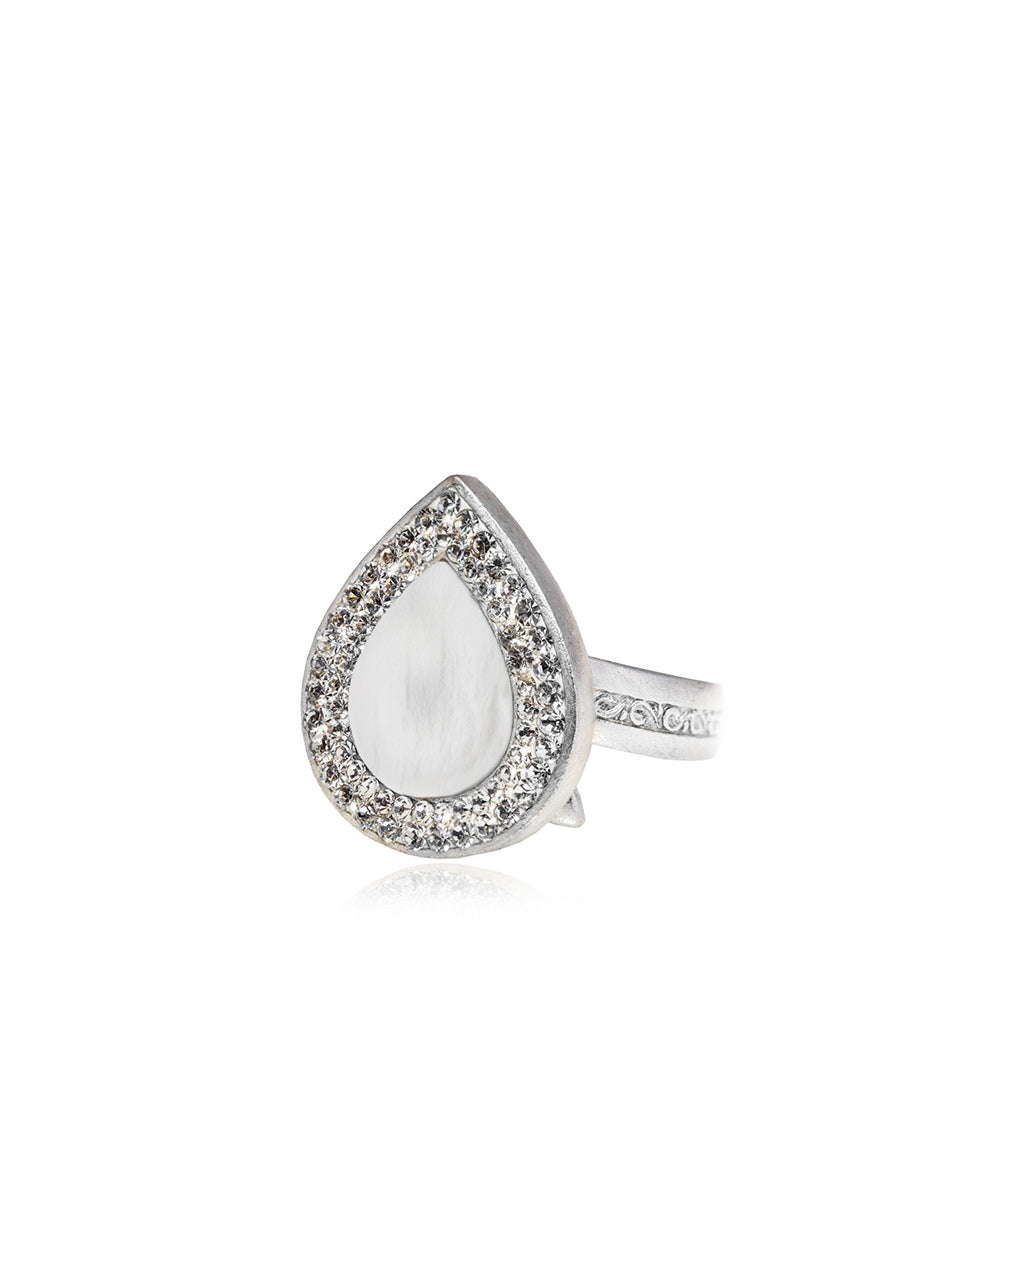 Halo Petite Tear Gem Ring